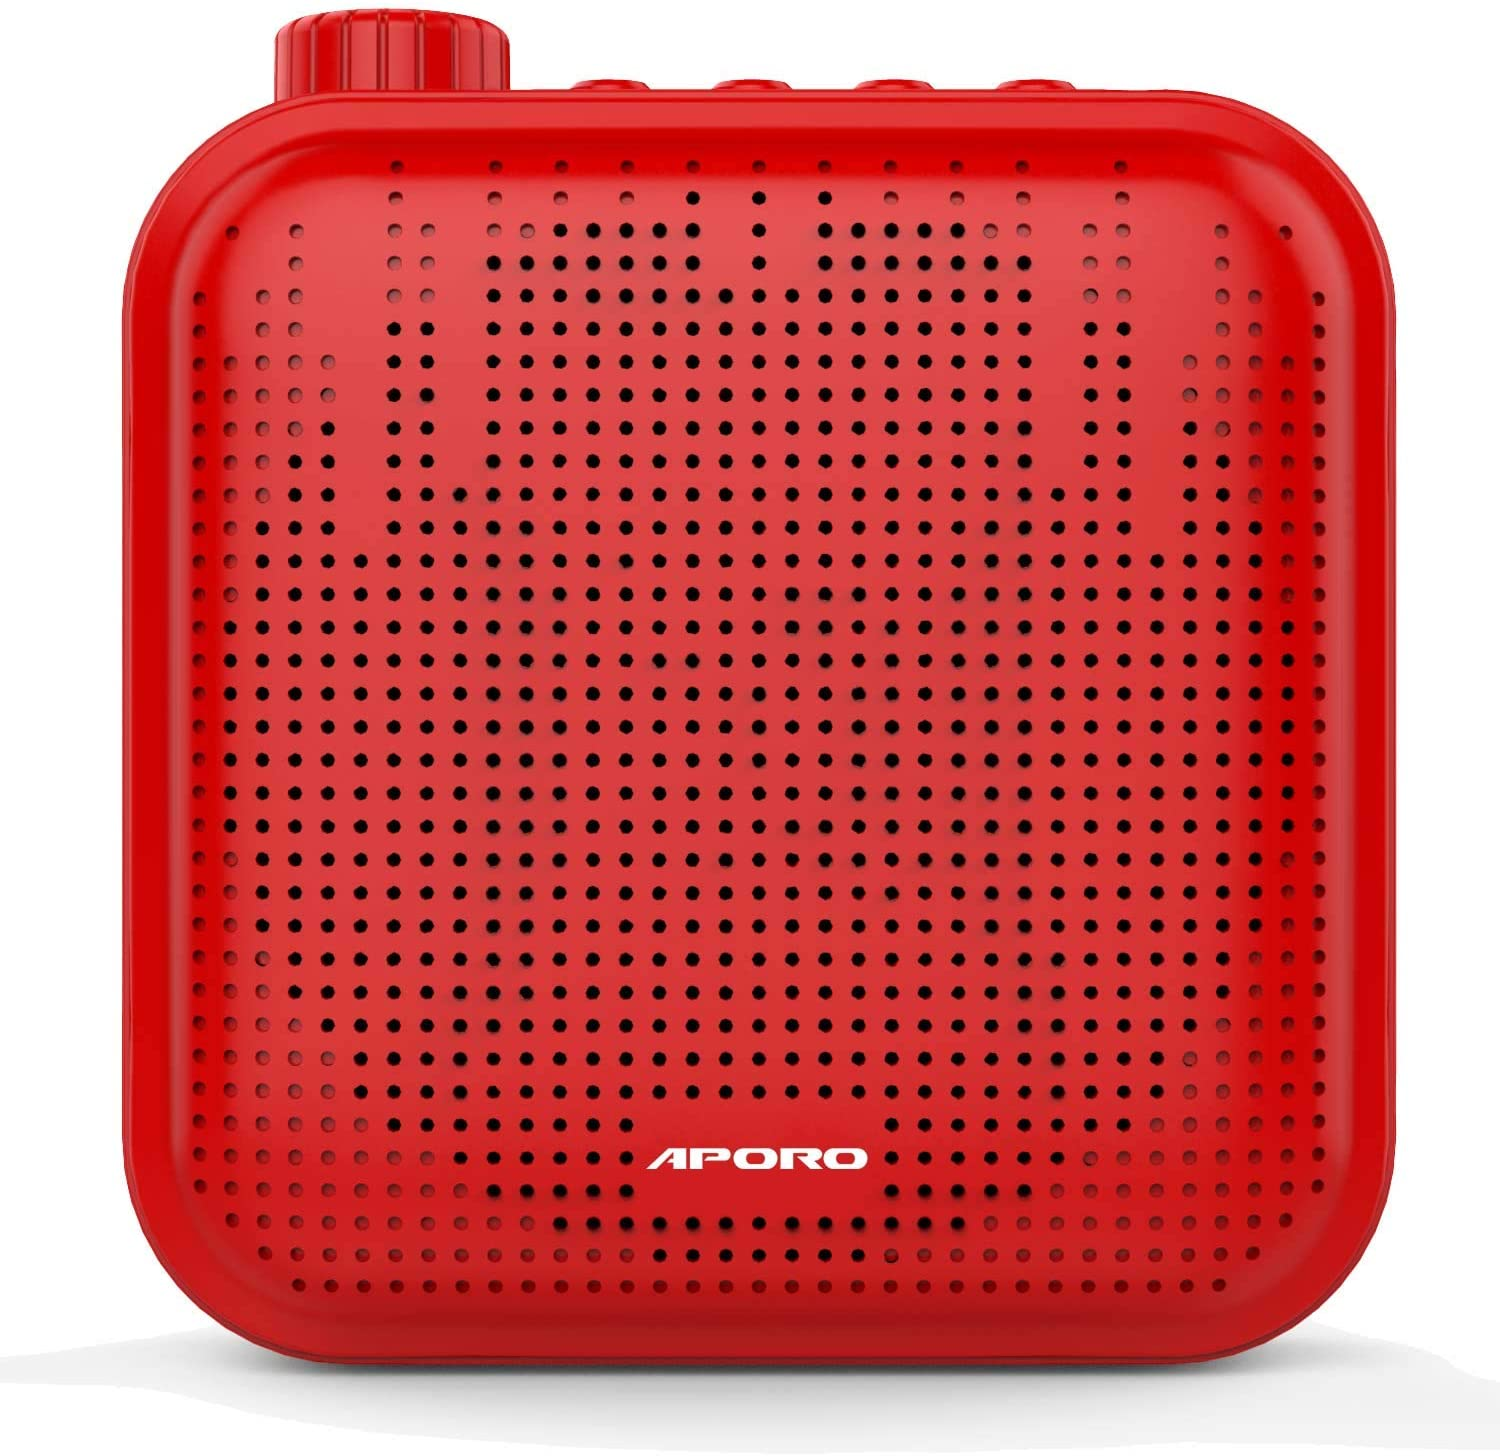 TiKeDa Mini Voice Amplifier With Wired Microphone Headset and Waistband,Supports MP3 Format Audio for Teachers, Singing, Coaches,Training,Presentation,Tour Guide,Portable Rechargeable (Red)